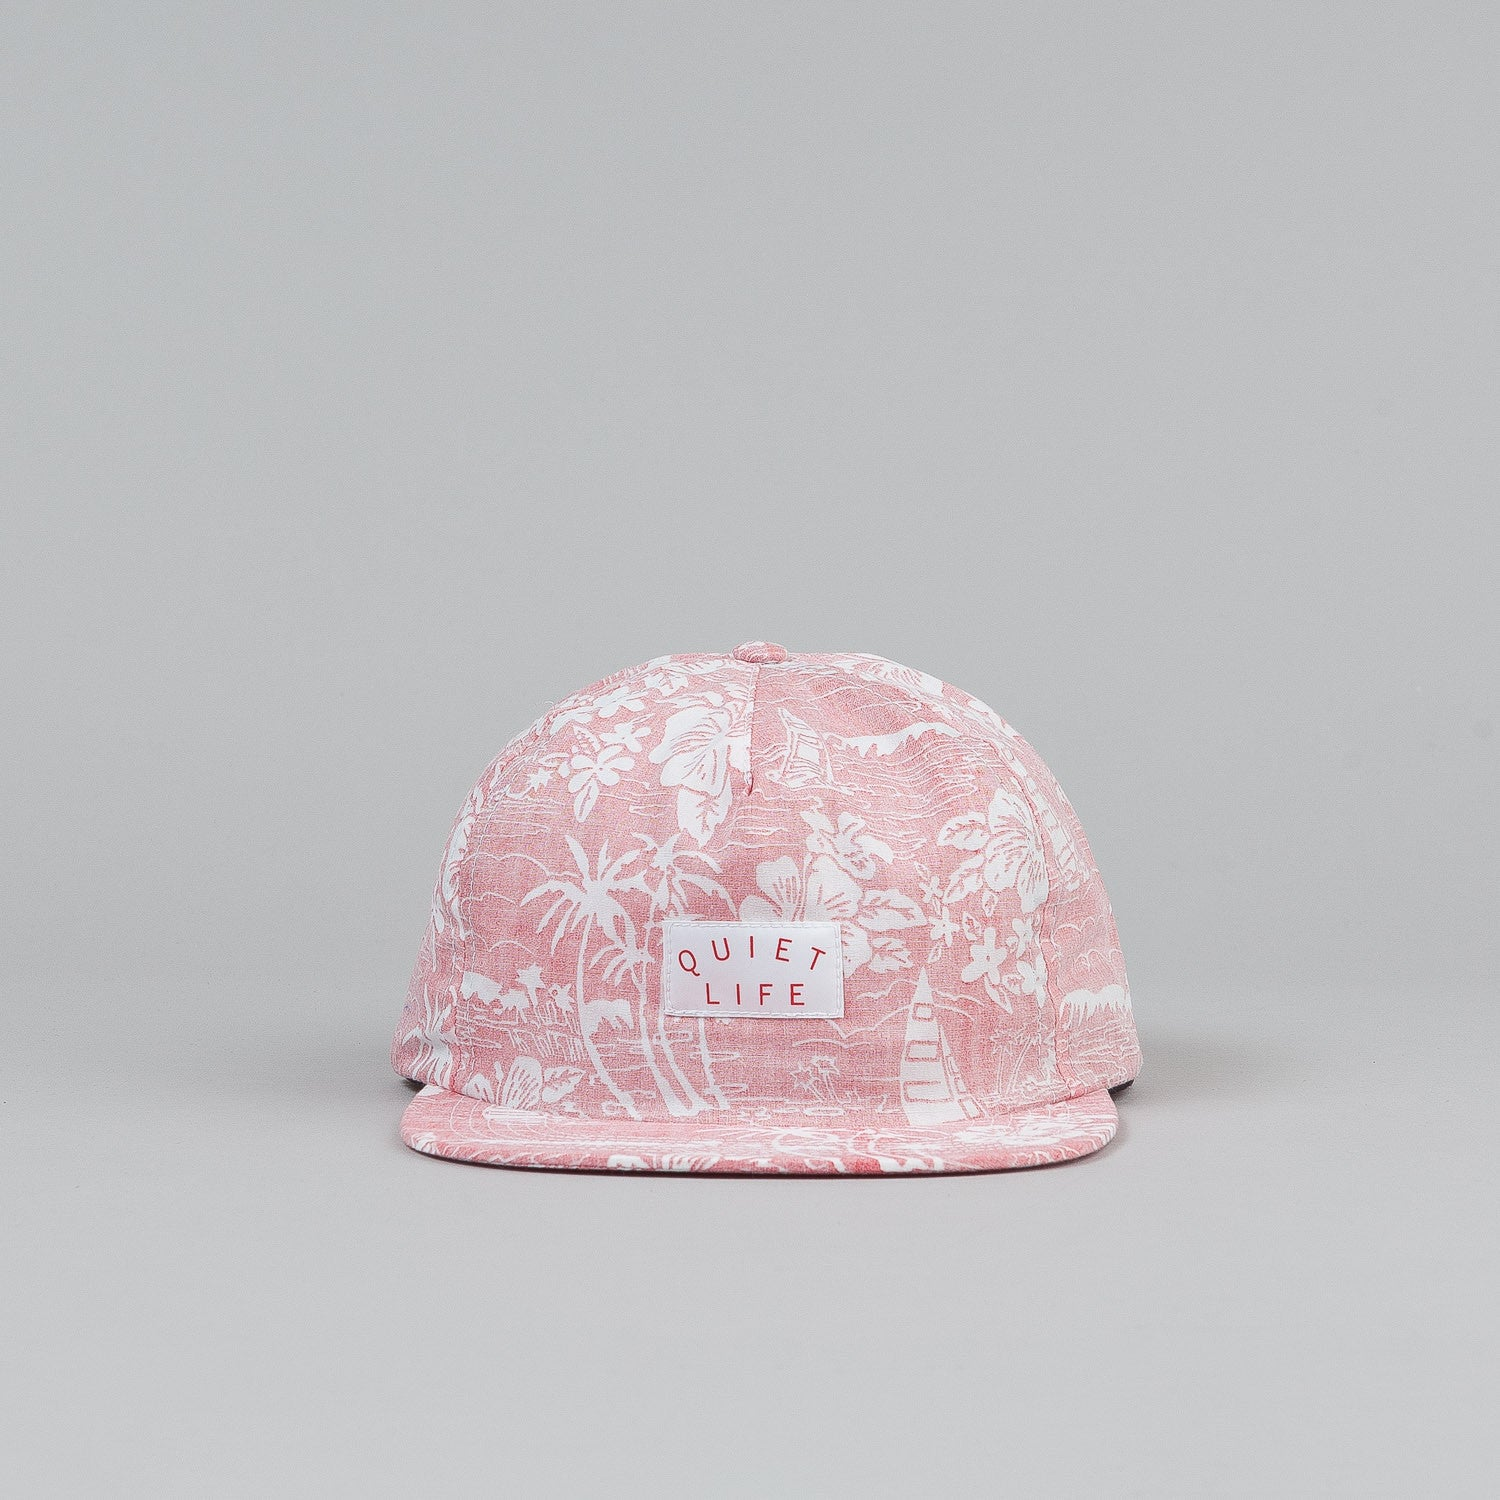 The Quiet Life Reversed Hawaiian Relaxed Snapback Cap